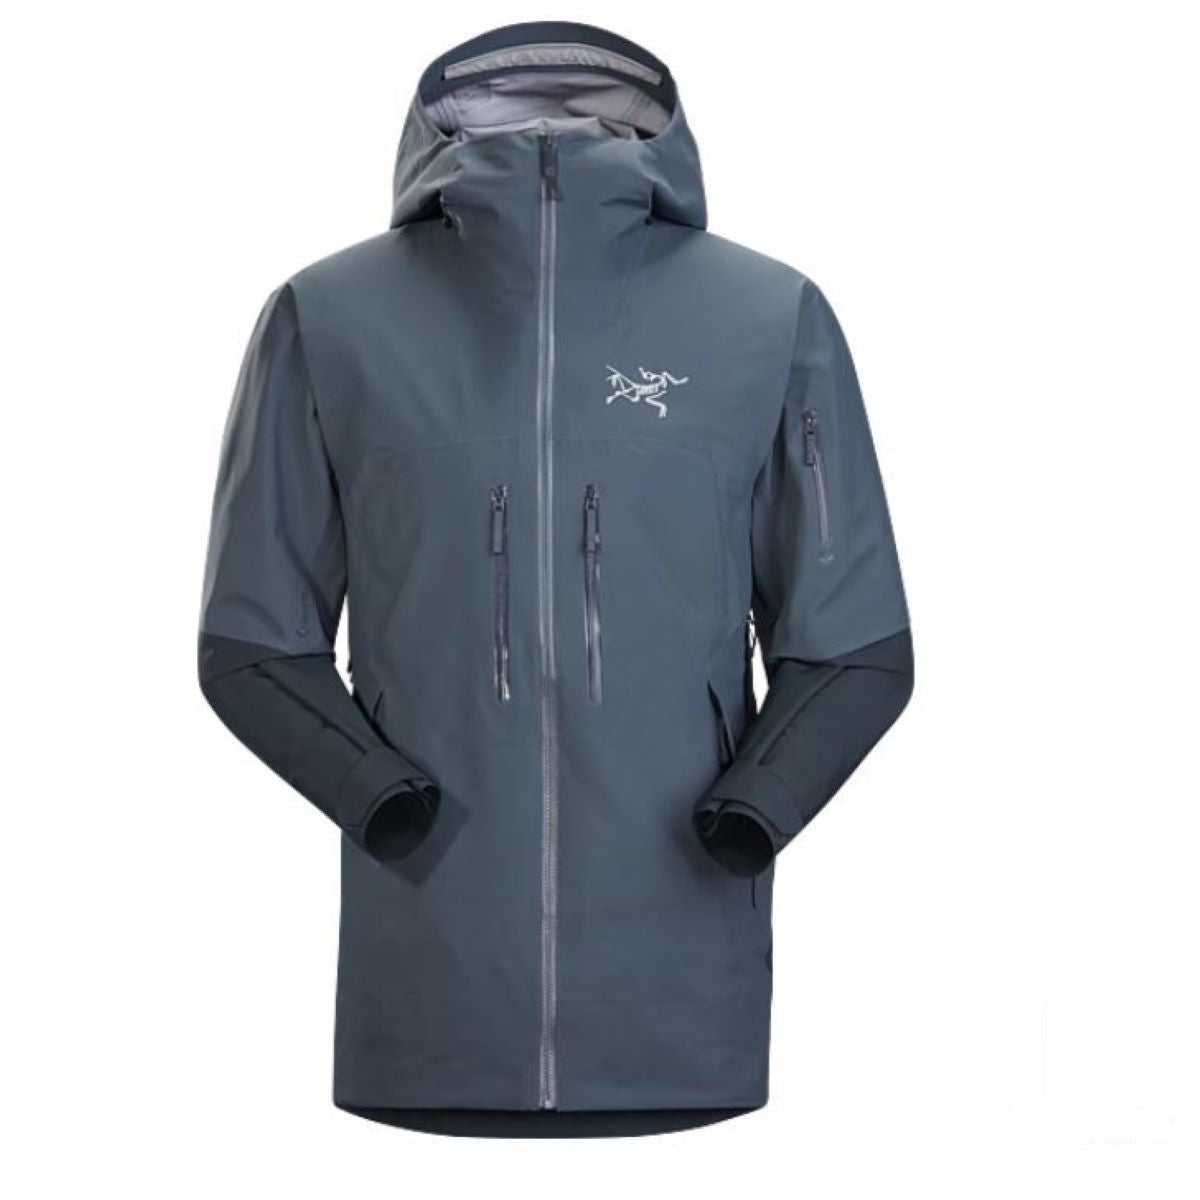 Arcteryx Men's Sabra LT Jacket